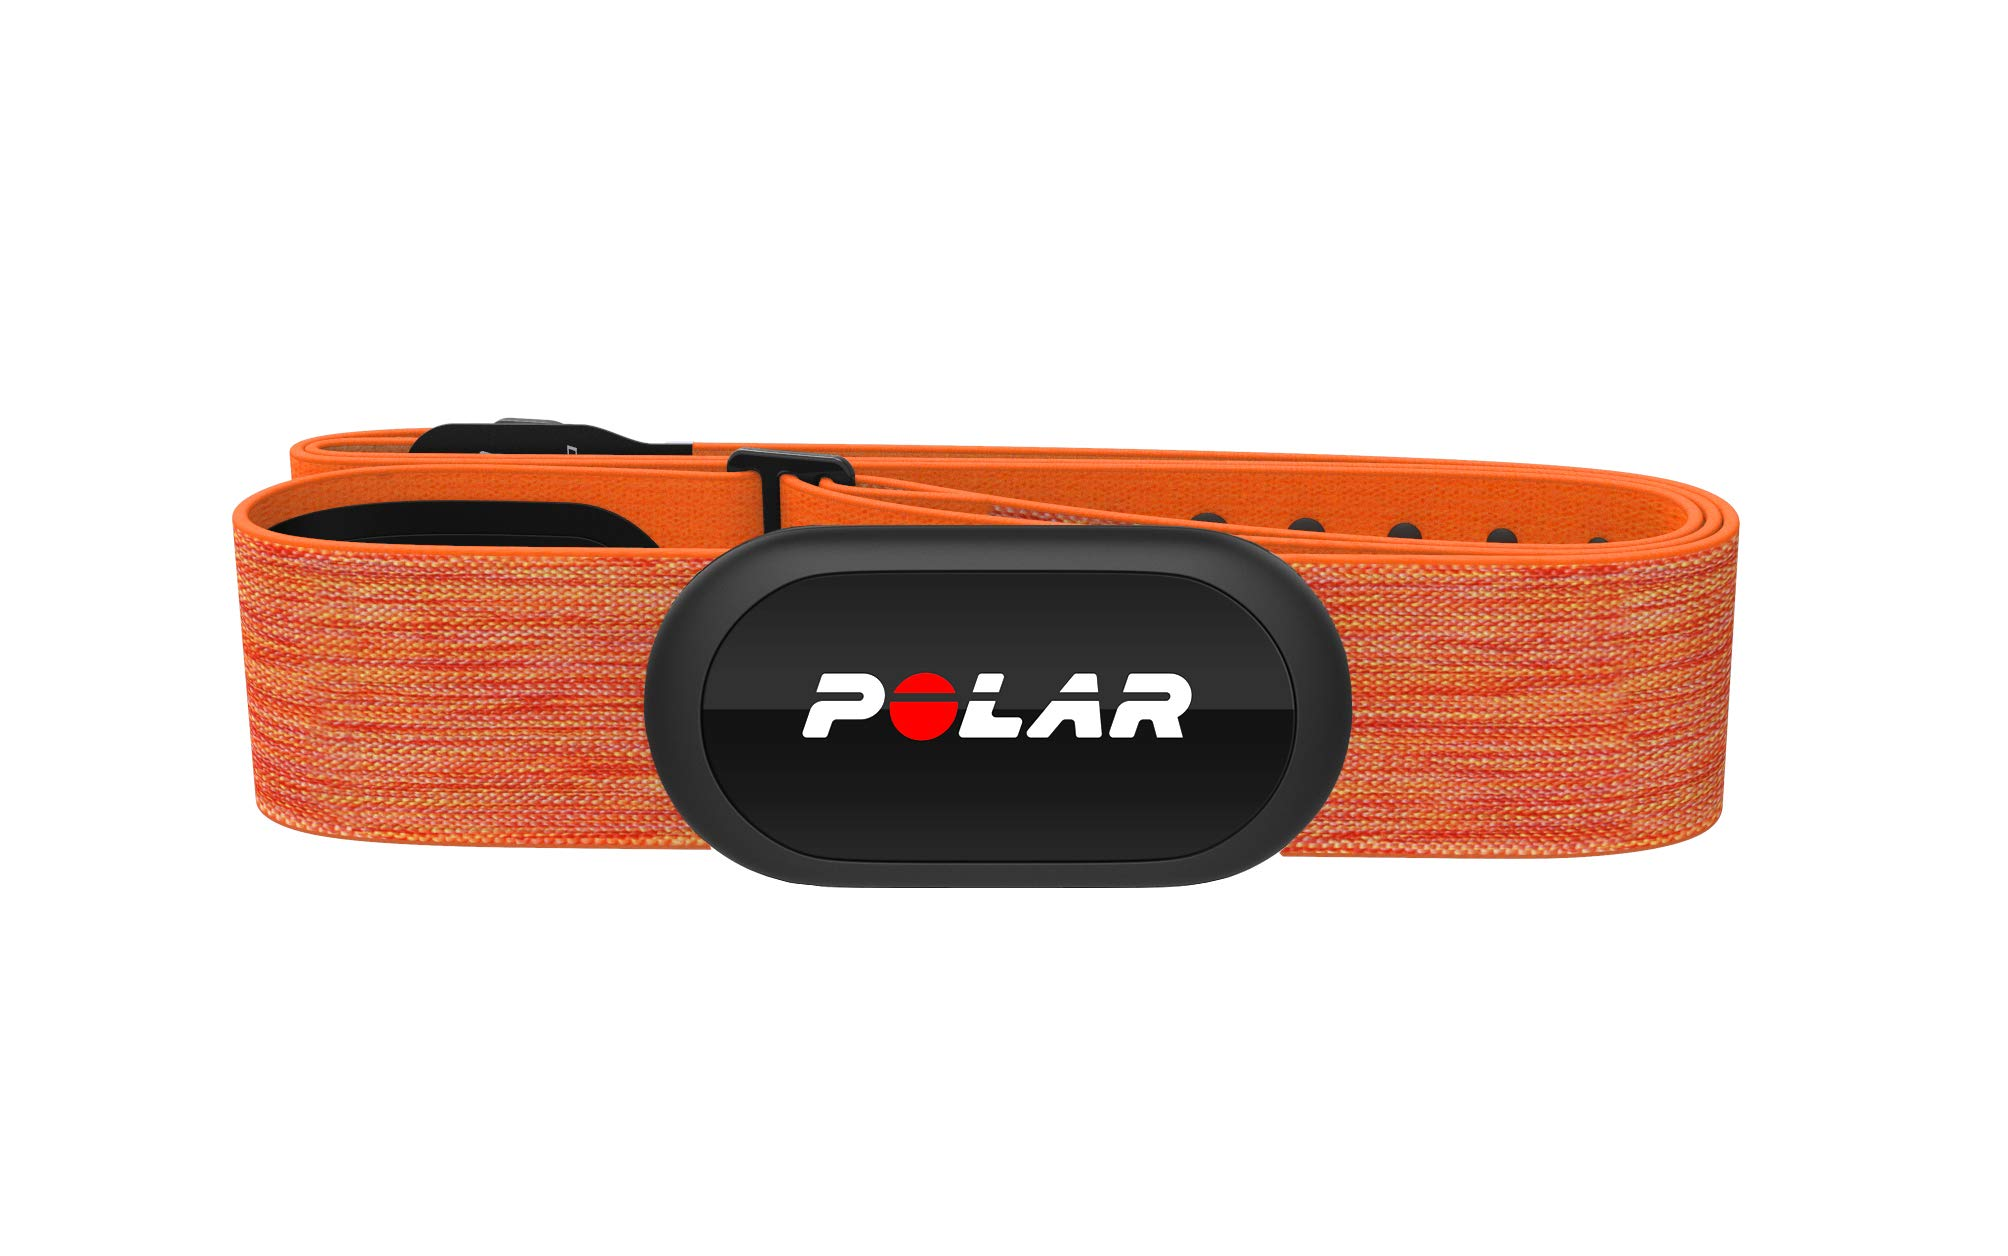 Polar H10 Heart Rate Monitor, Bluetooth HRM Chest Strap - iPhone & Android Compatible, Orange